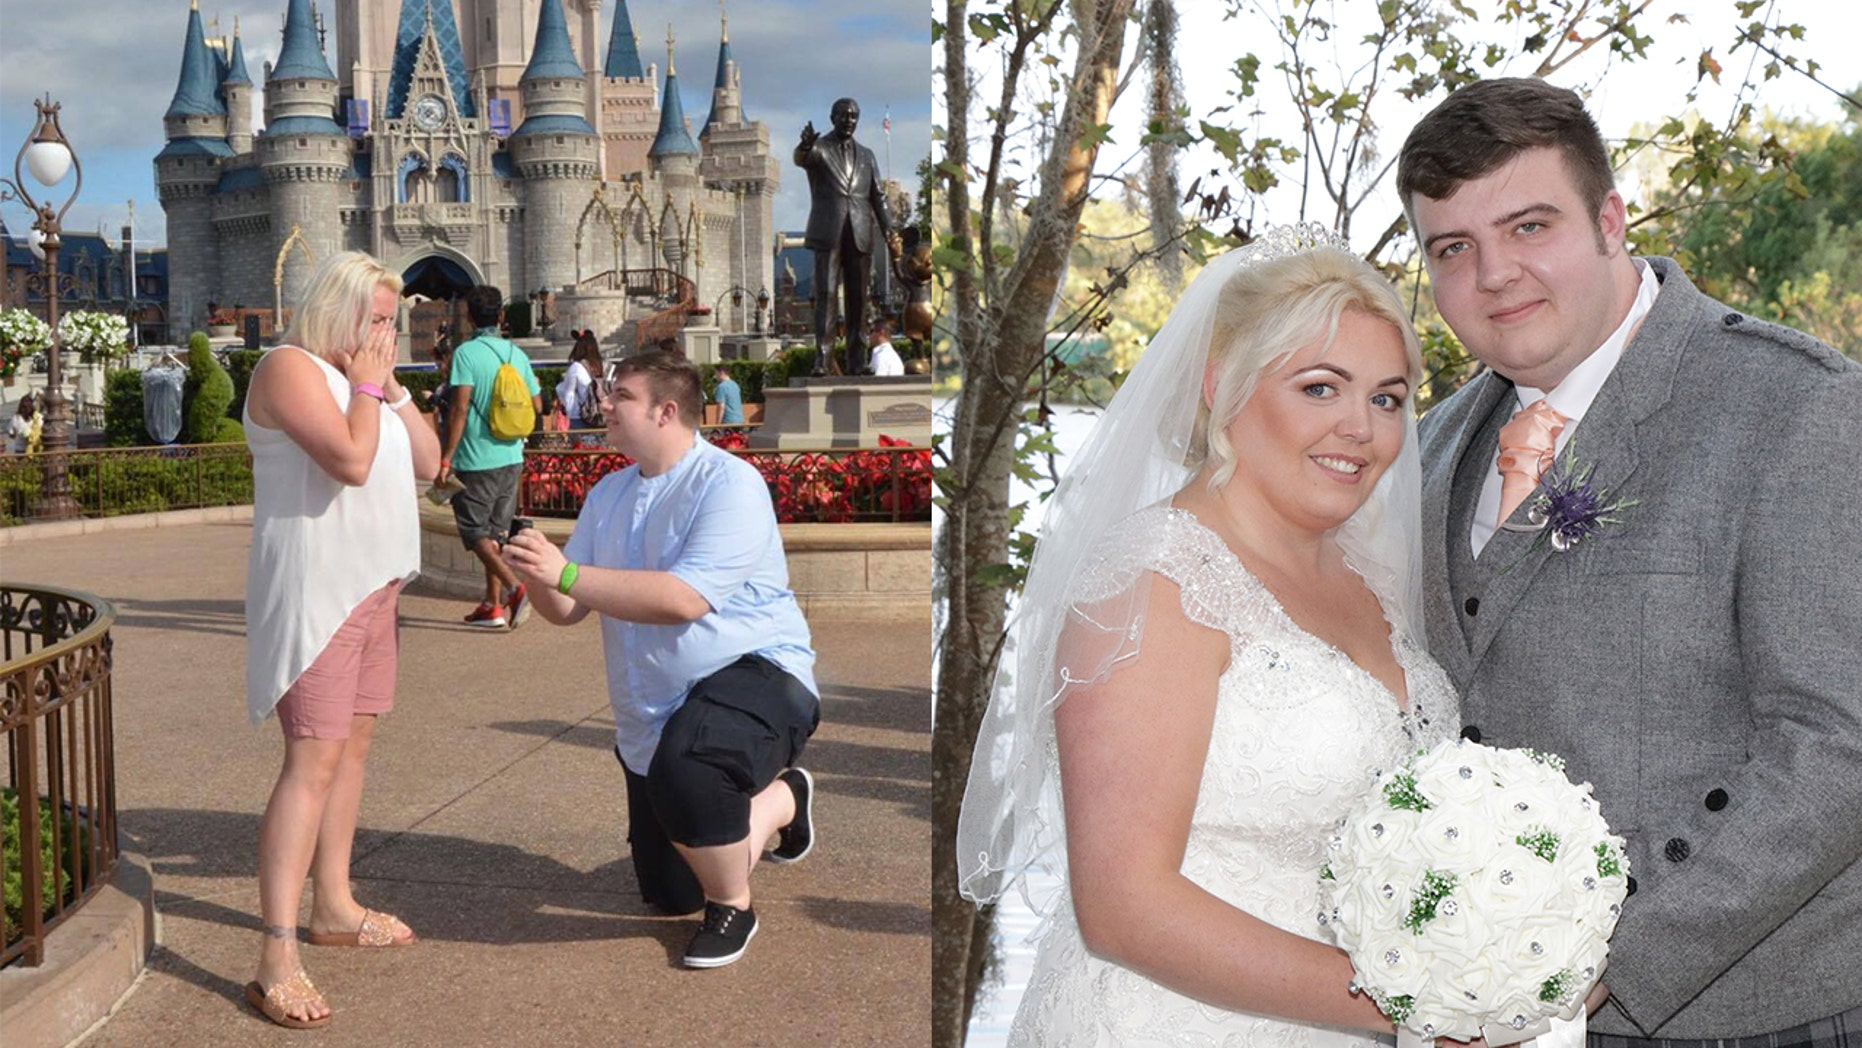 A woman got her dream proposal in front of Cinderella's castle at Disney World, as well as a surprise wedding 24 hours later